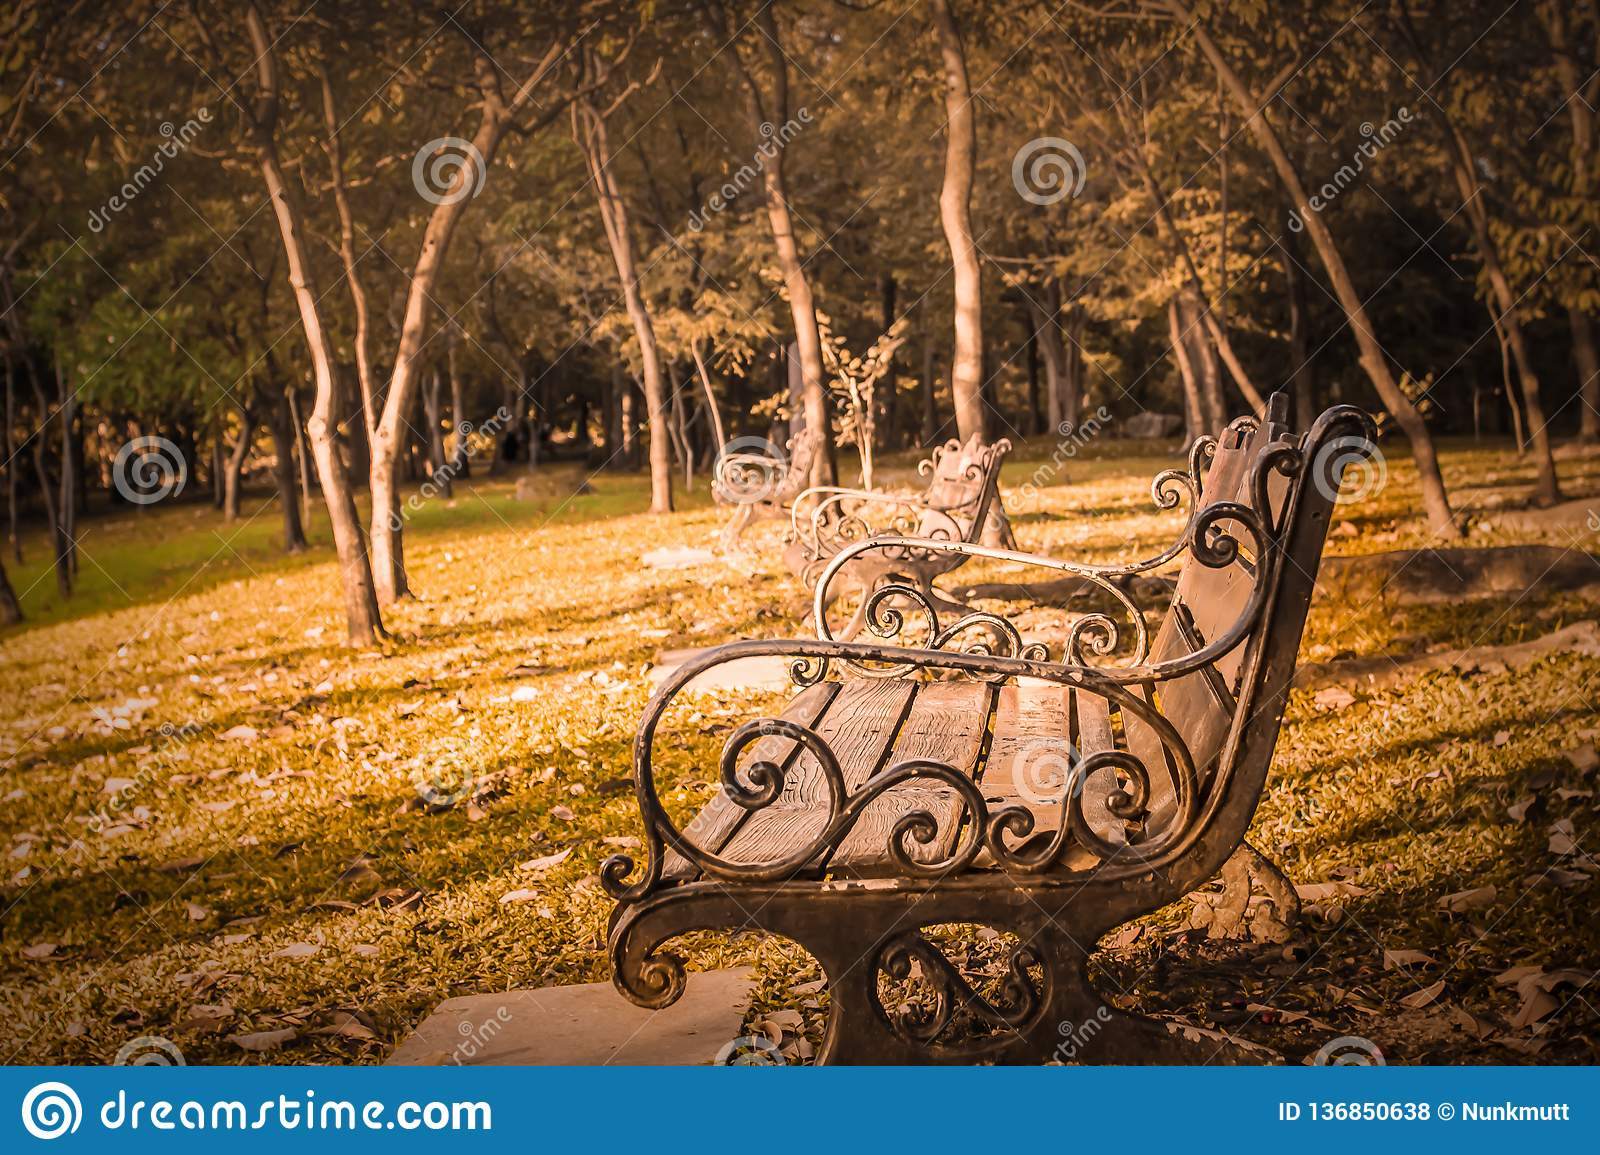 Old Wooden Vintage Bench Style In Park Summer Morning Lifestyle